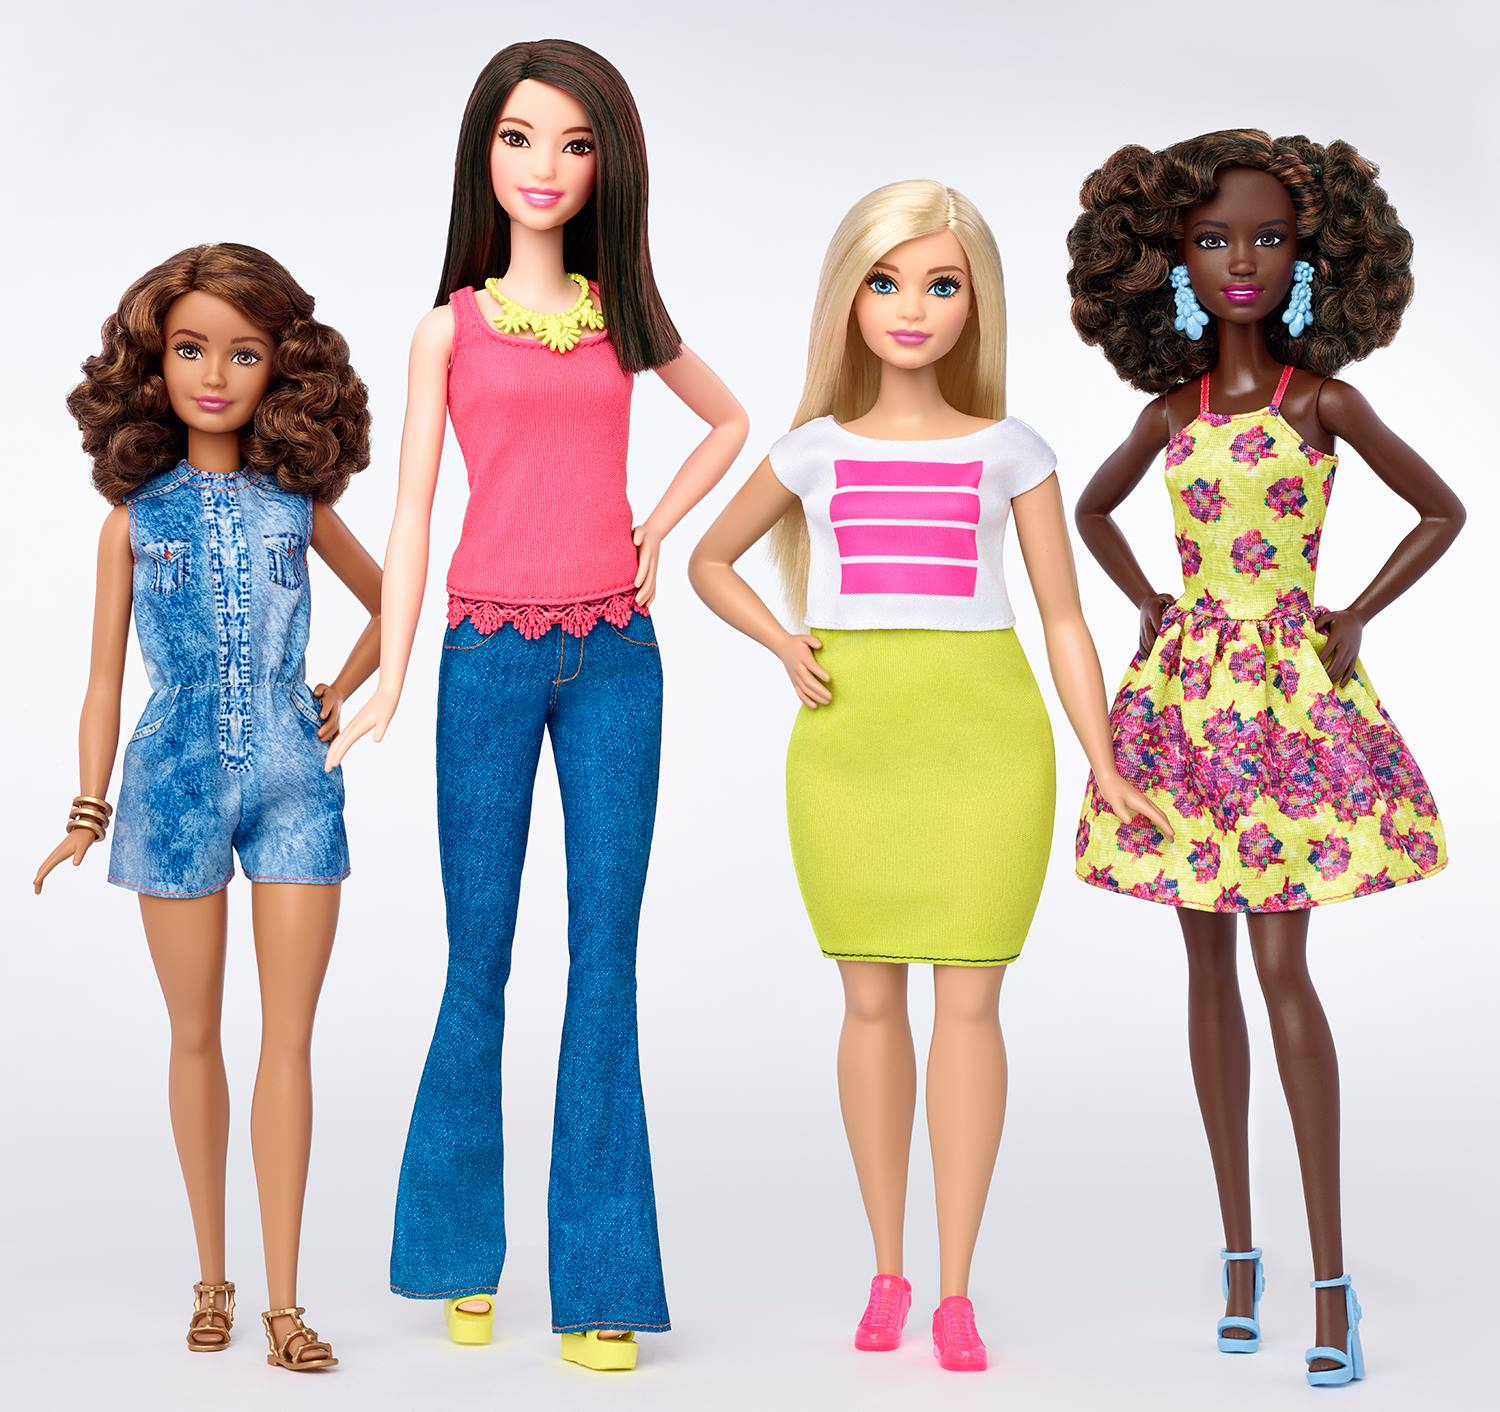 March 9, 1959 – 2018 Barbie Doll™ History and Collecting | Barbie ...